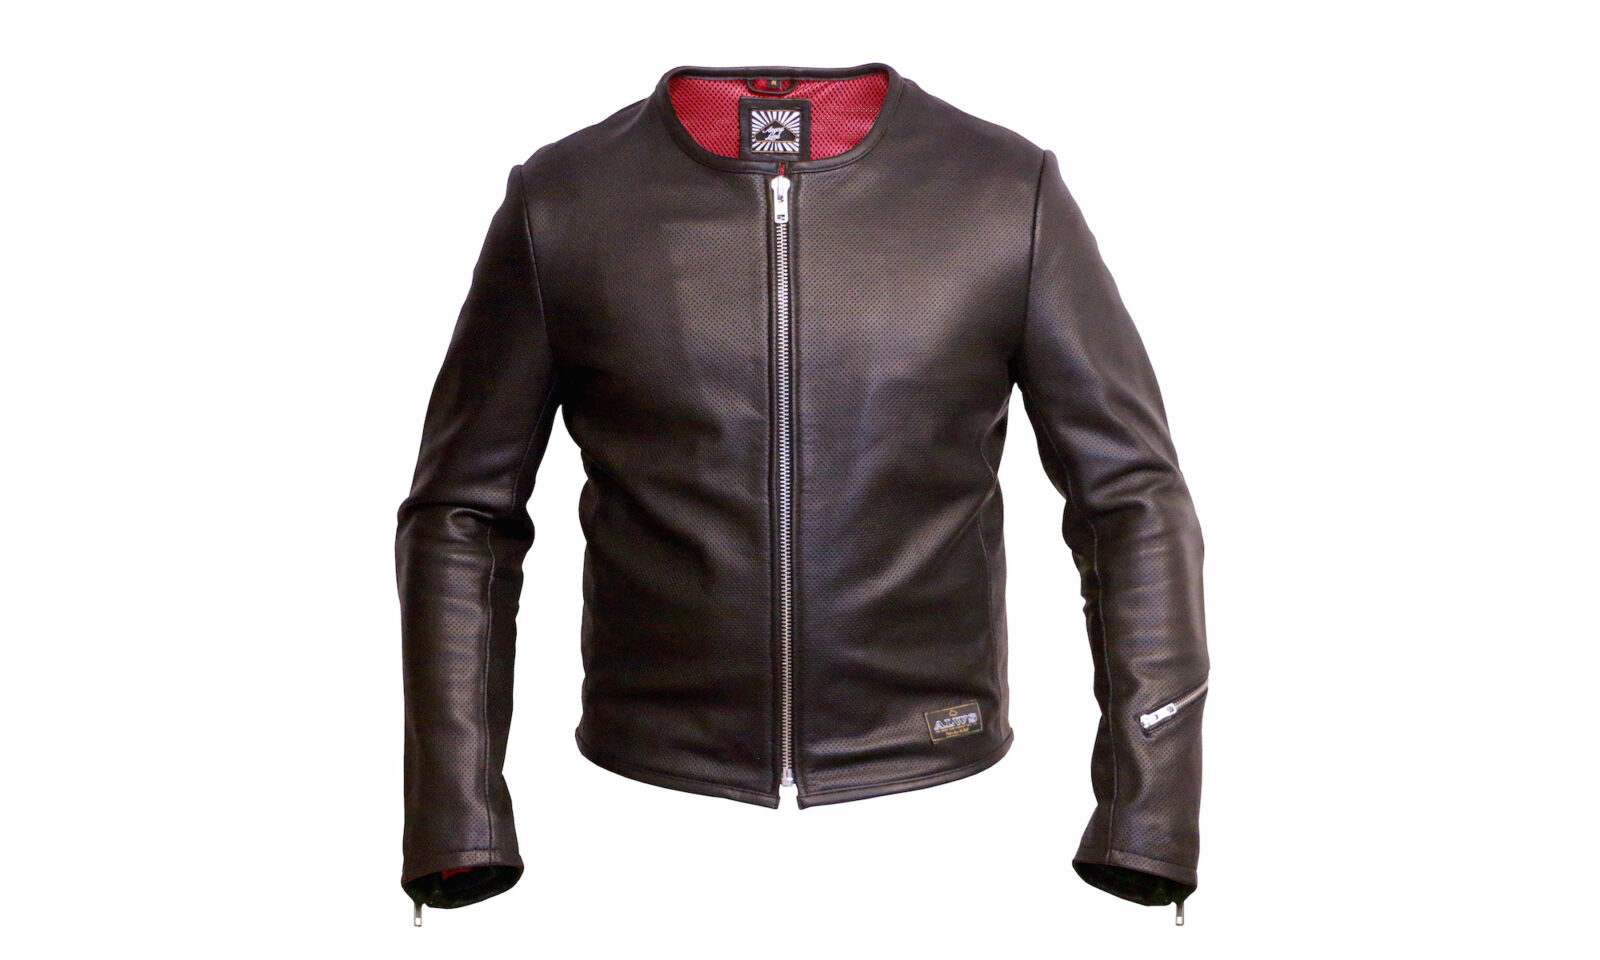 Perforated Leather Motorcycle Jacket 1600x960 - 1/4 Mile Leather Jacket by Angry Lane